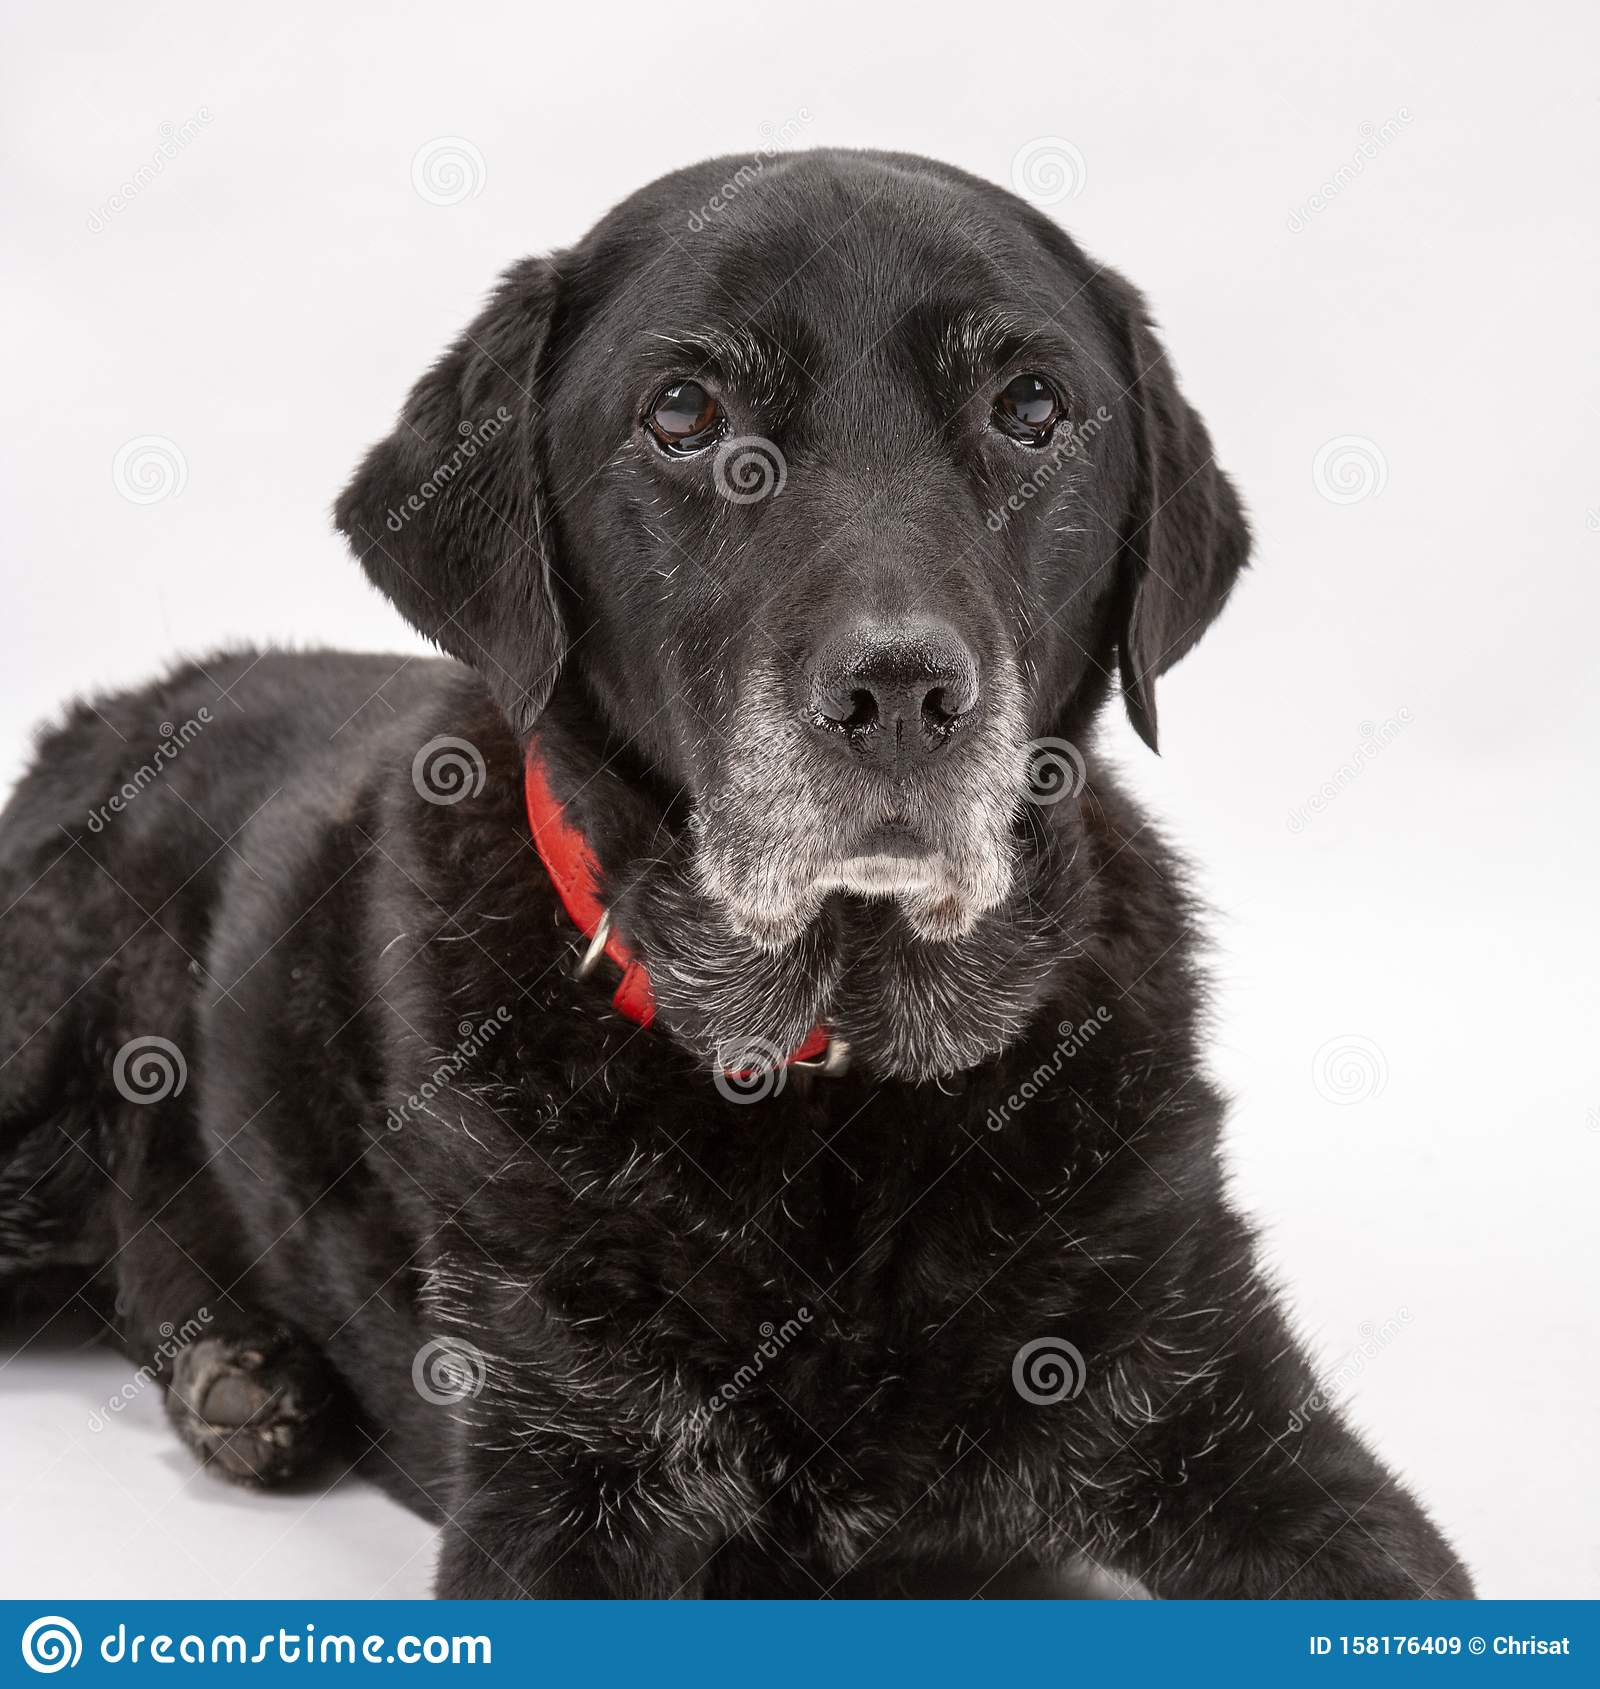 An elderly black labrador poses on a white seamless backdrop